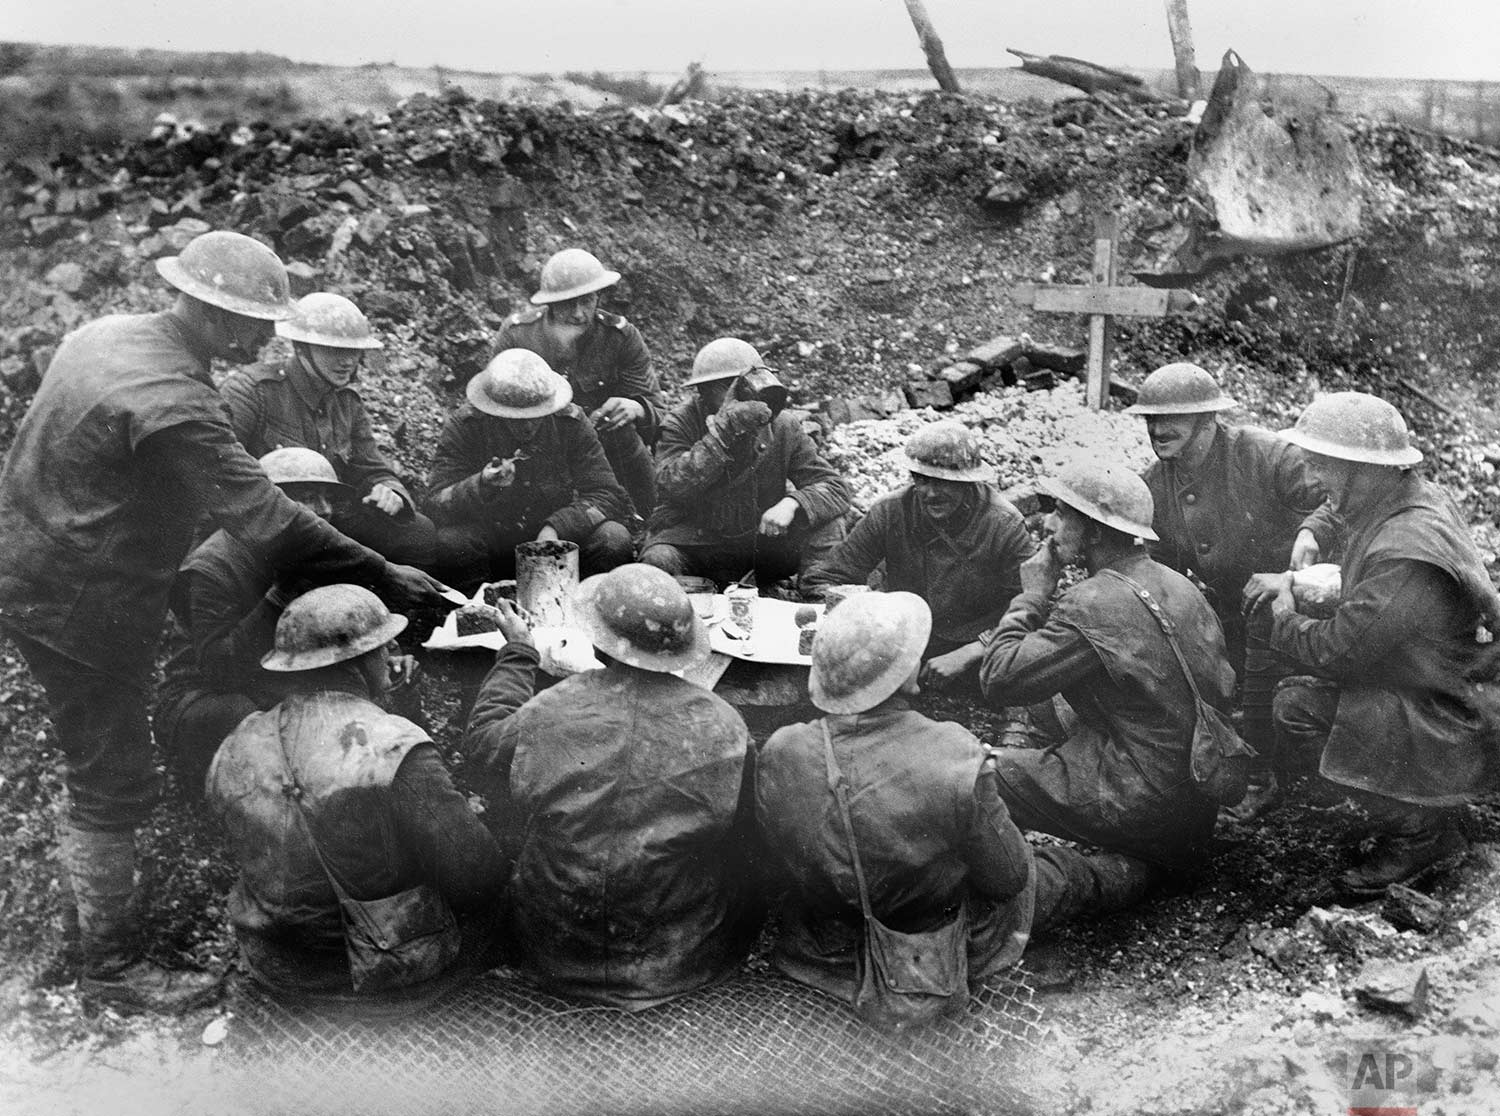 In this undated photo, Allied soldiers eat and drink in a shell hole in France during World War One. (AP Photo)